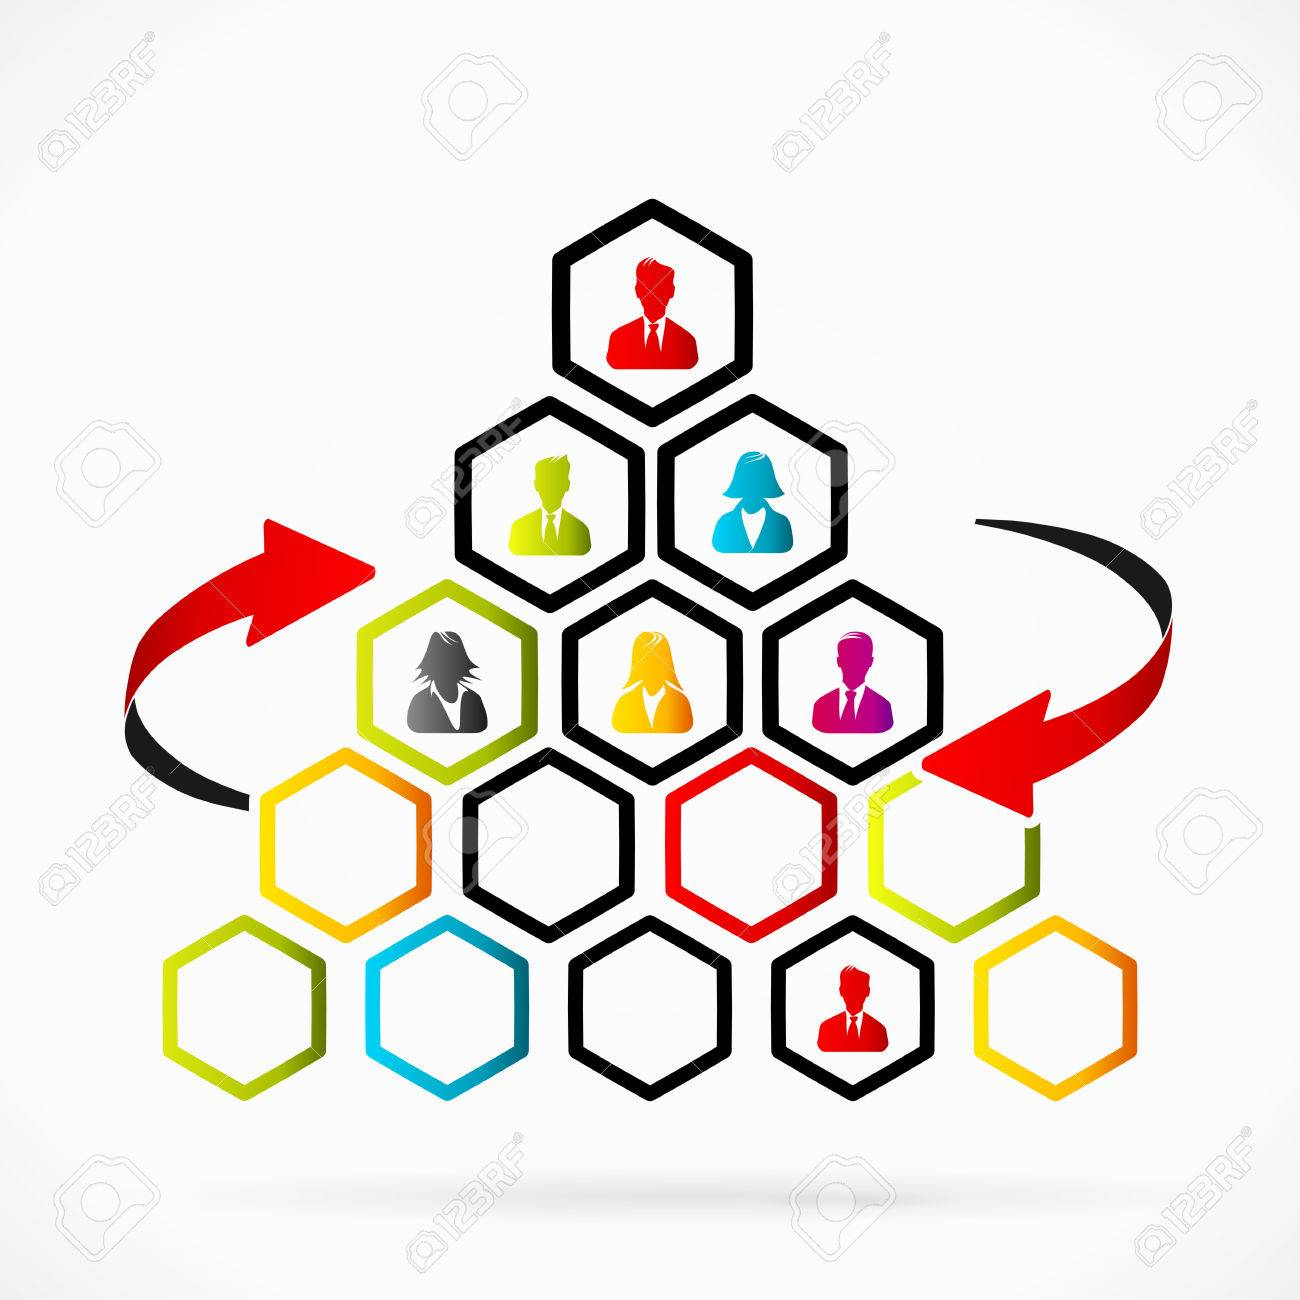 Dysfunctional organizational pyramid with too many decision factors Stock Vector - 24828457